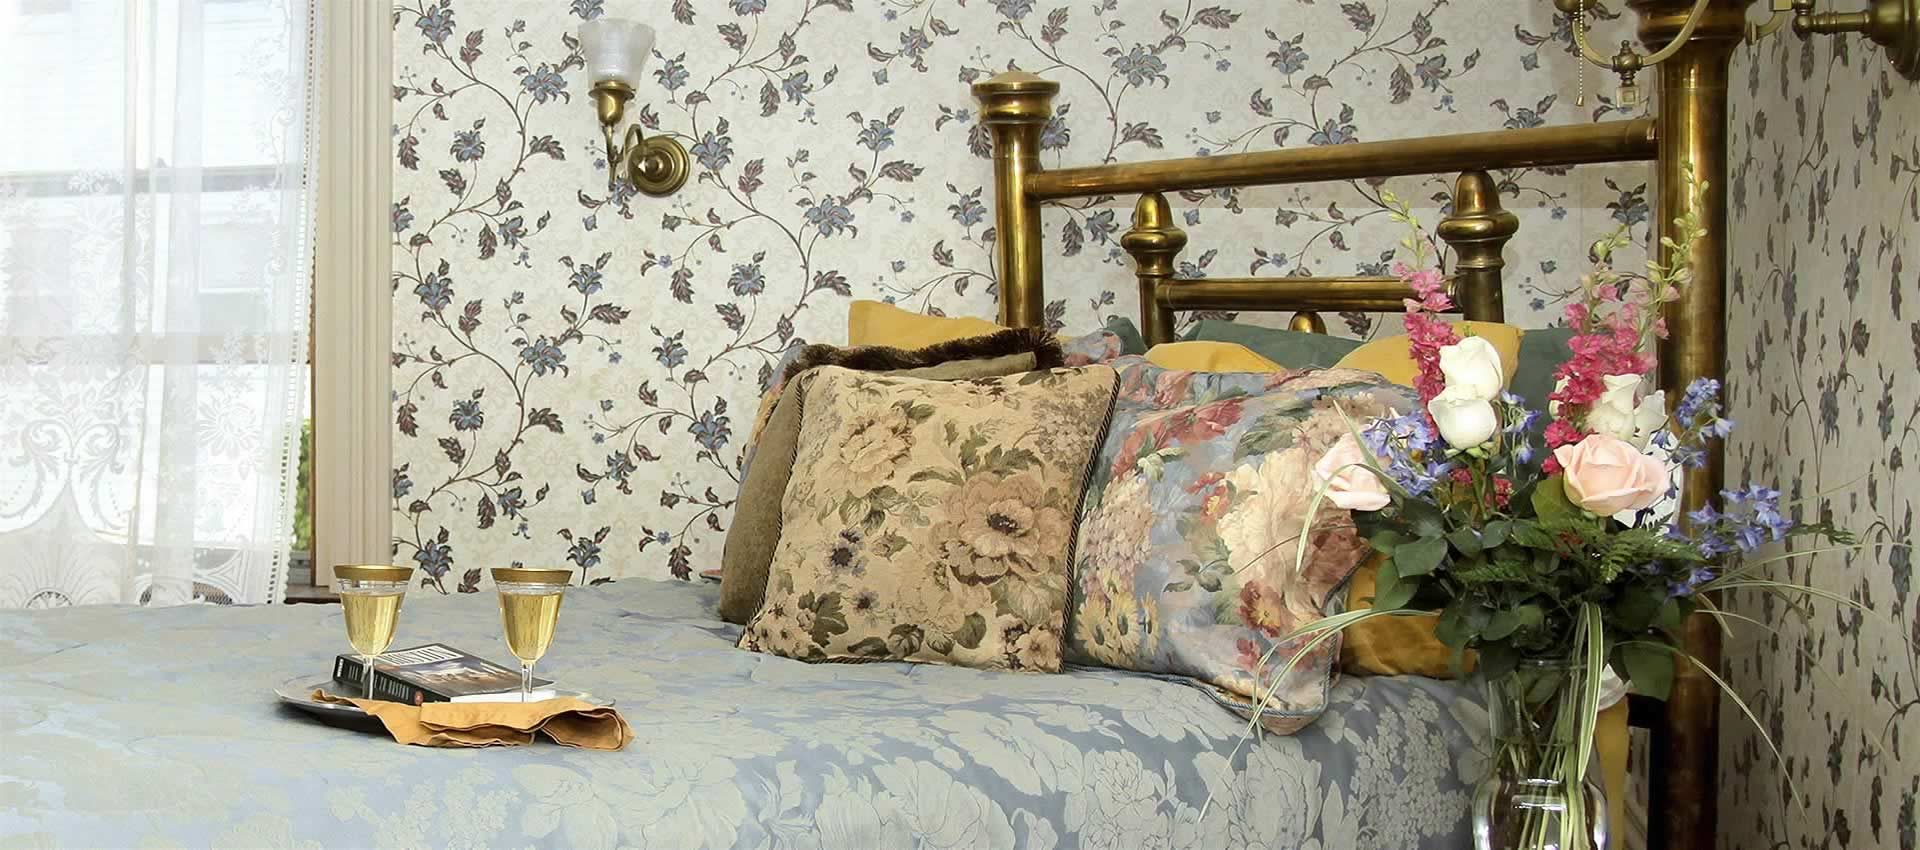 Florence Suite – Bed with Flowers